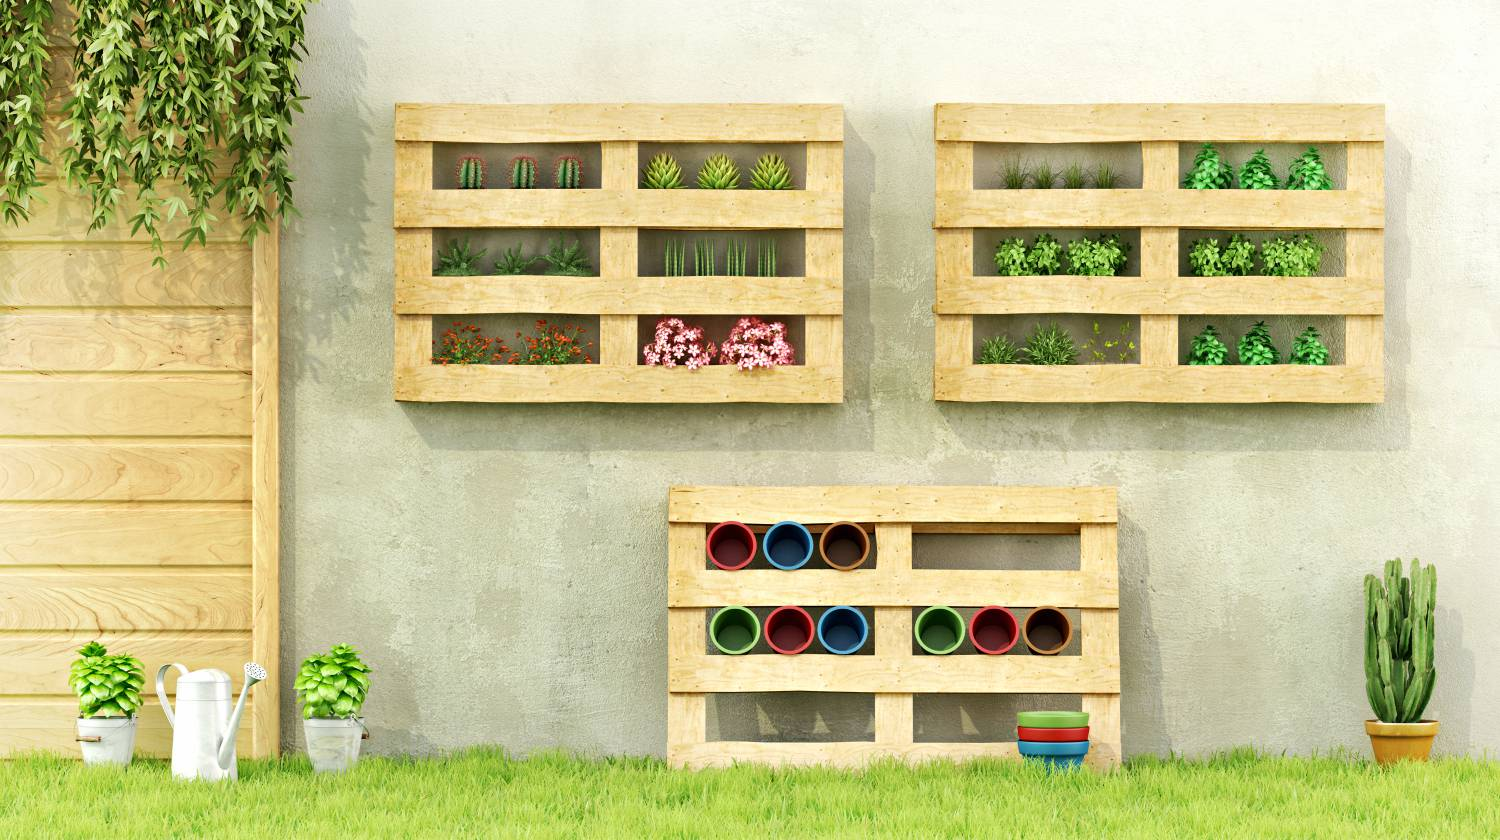 Garden with planters made of recycled wooden pallets | Creative DIY Pallet Planter Ideas For Spring | Featured